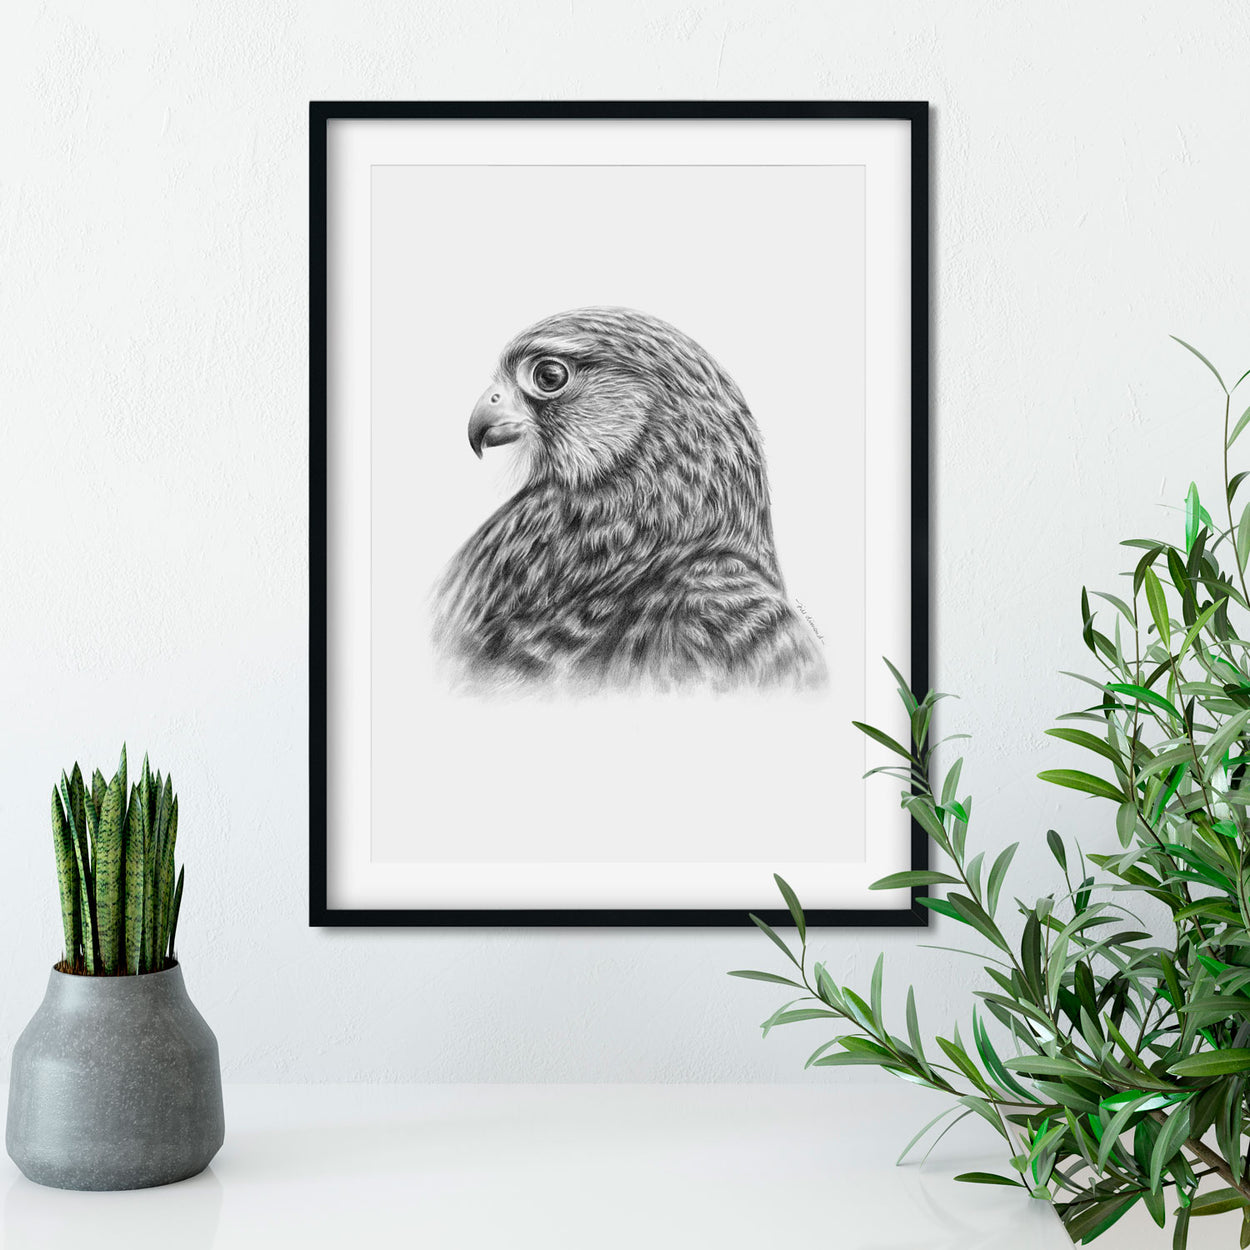 Kestrel Drawing in Frame on Wall - The Thriving Wild